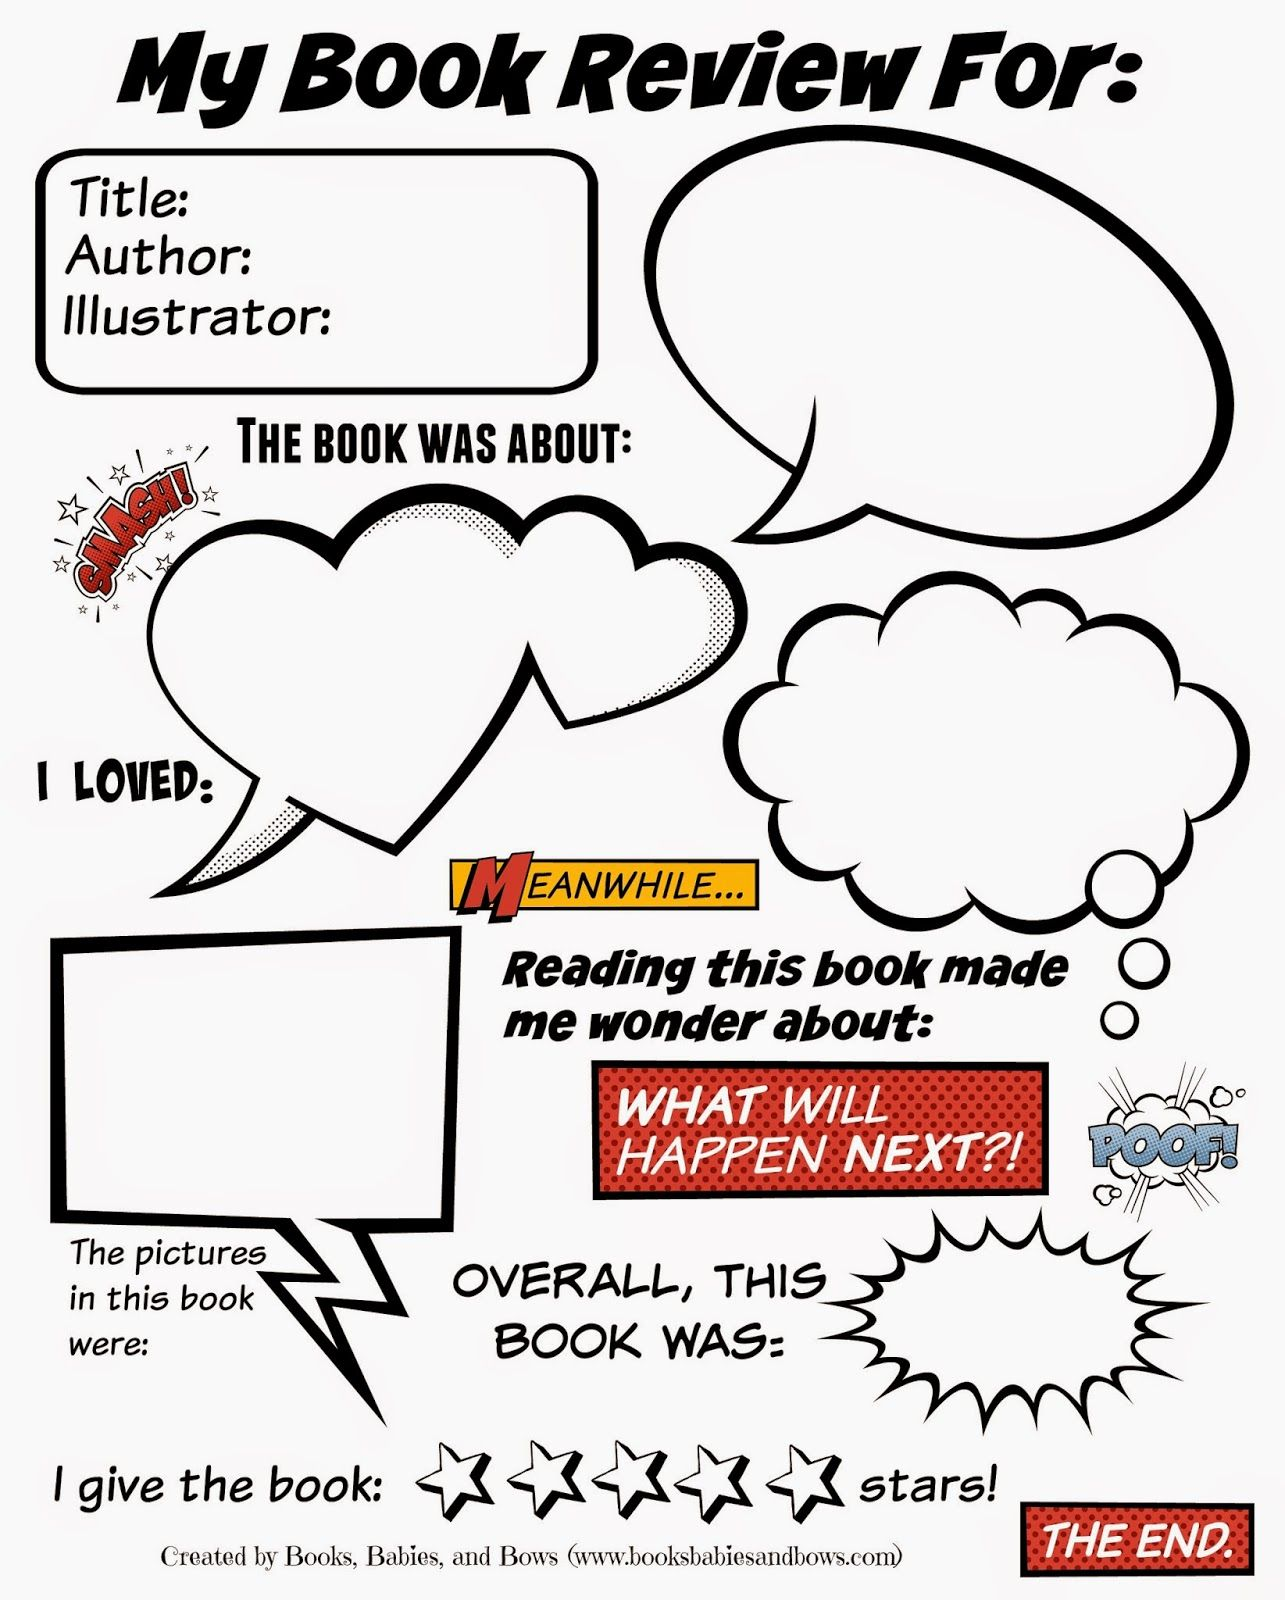 books babies and bows book review template for kids my oldest who is currently in second grade always has a lot to say about the books we if she wants to sit down to write a review